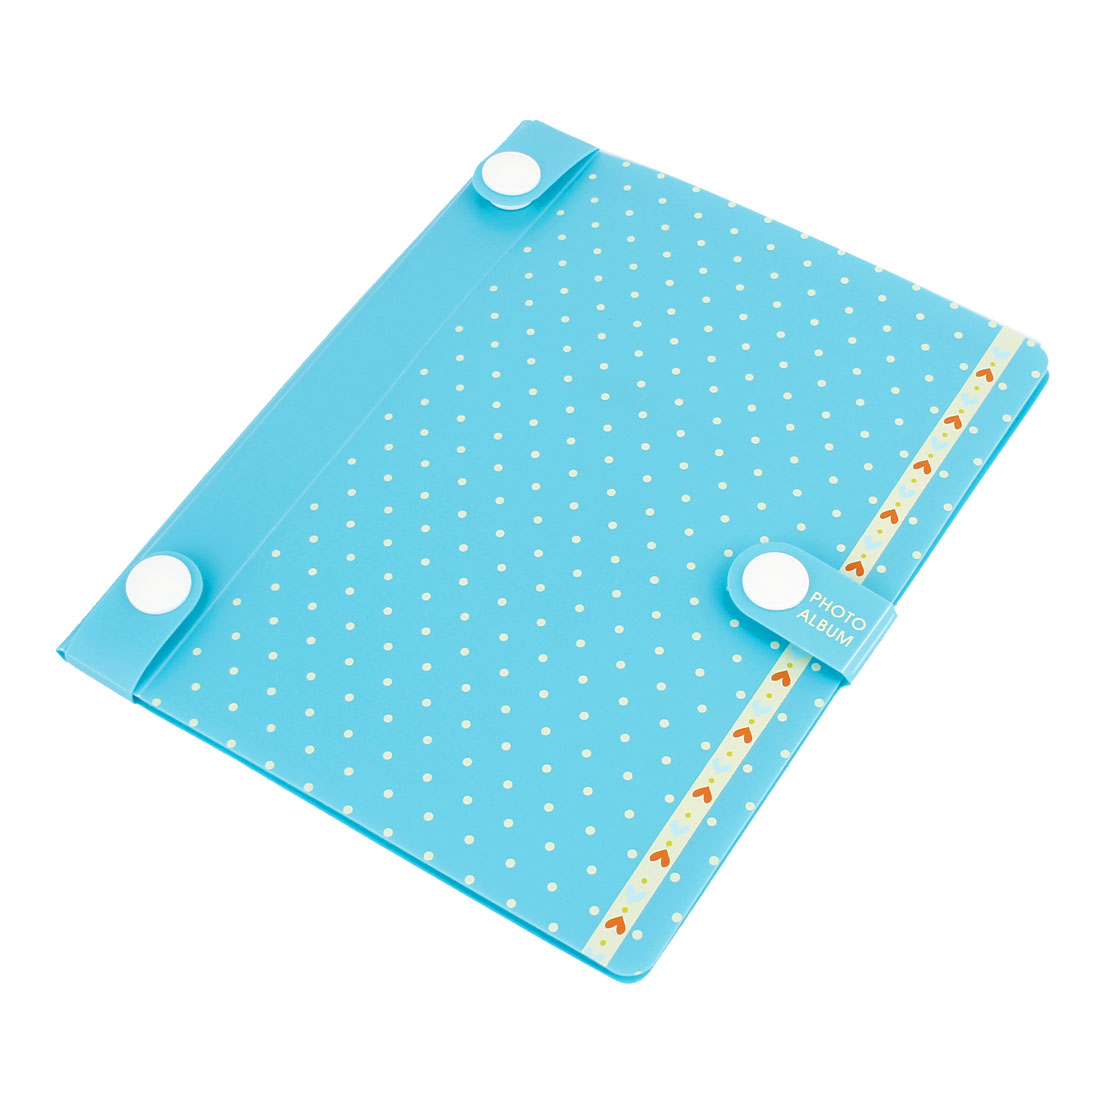 Dots Pattern Cover 10 Clear Pages DIY Scrapbook Photo Album Teal Blue